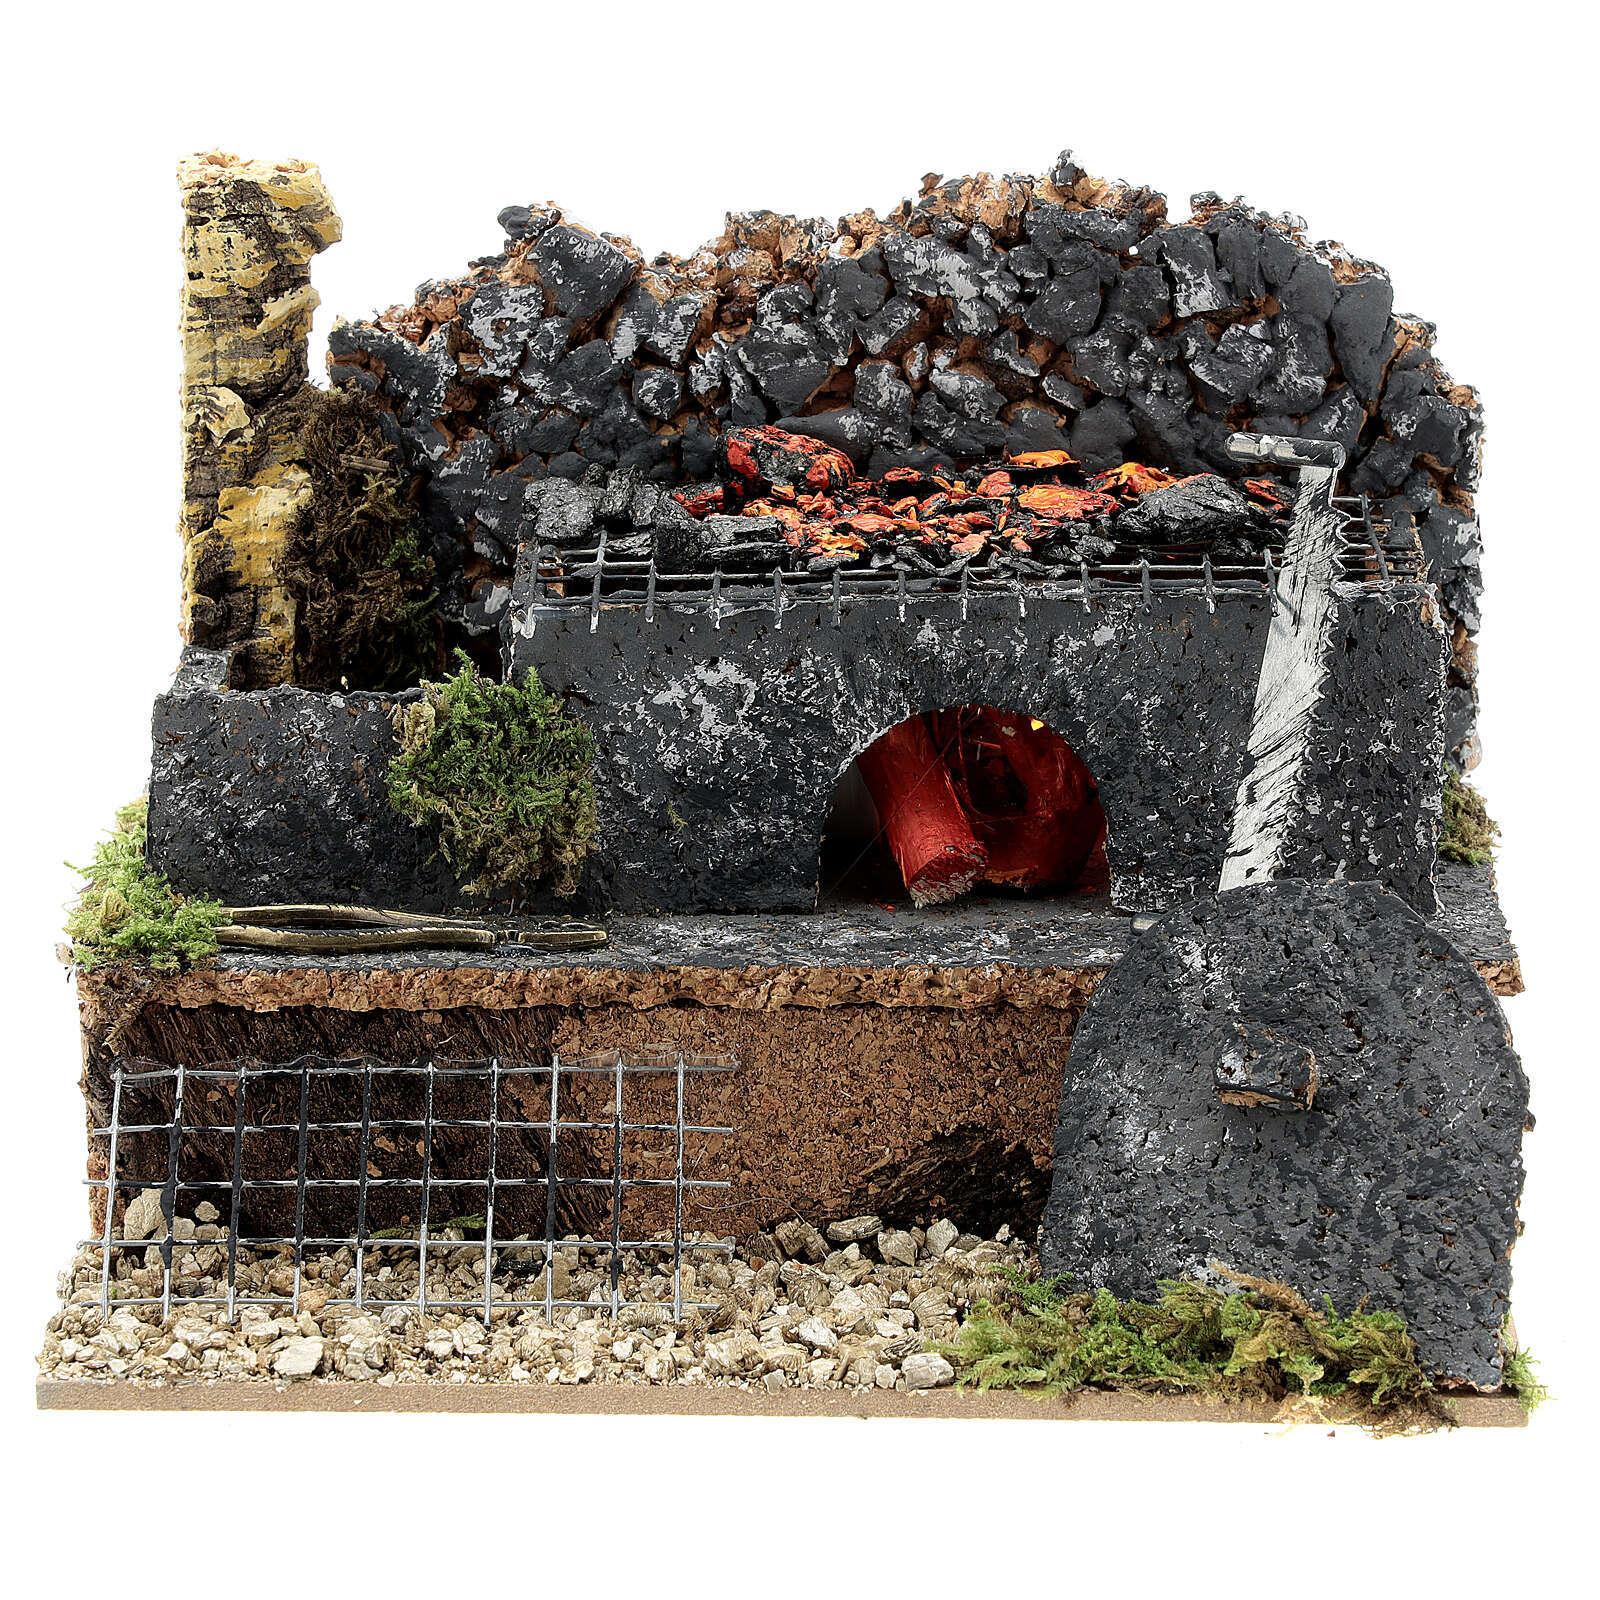 Mini forge for 14-16 cm nativity real fire effect 10x15x10 cm 4